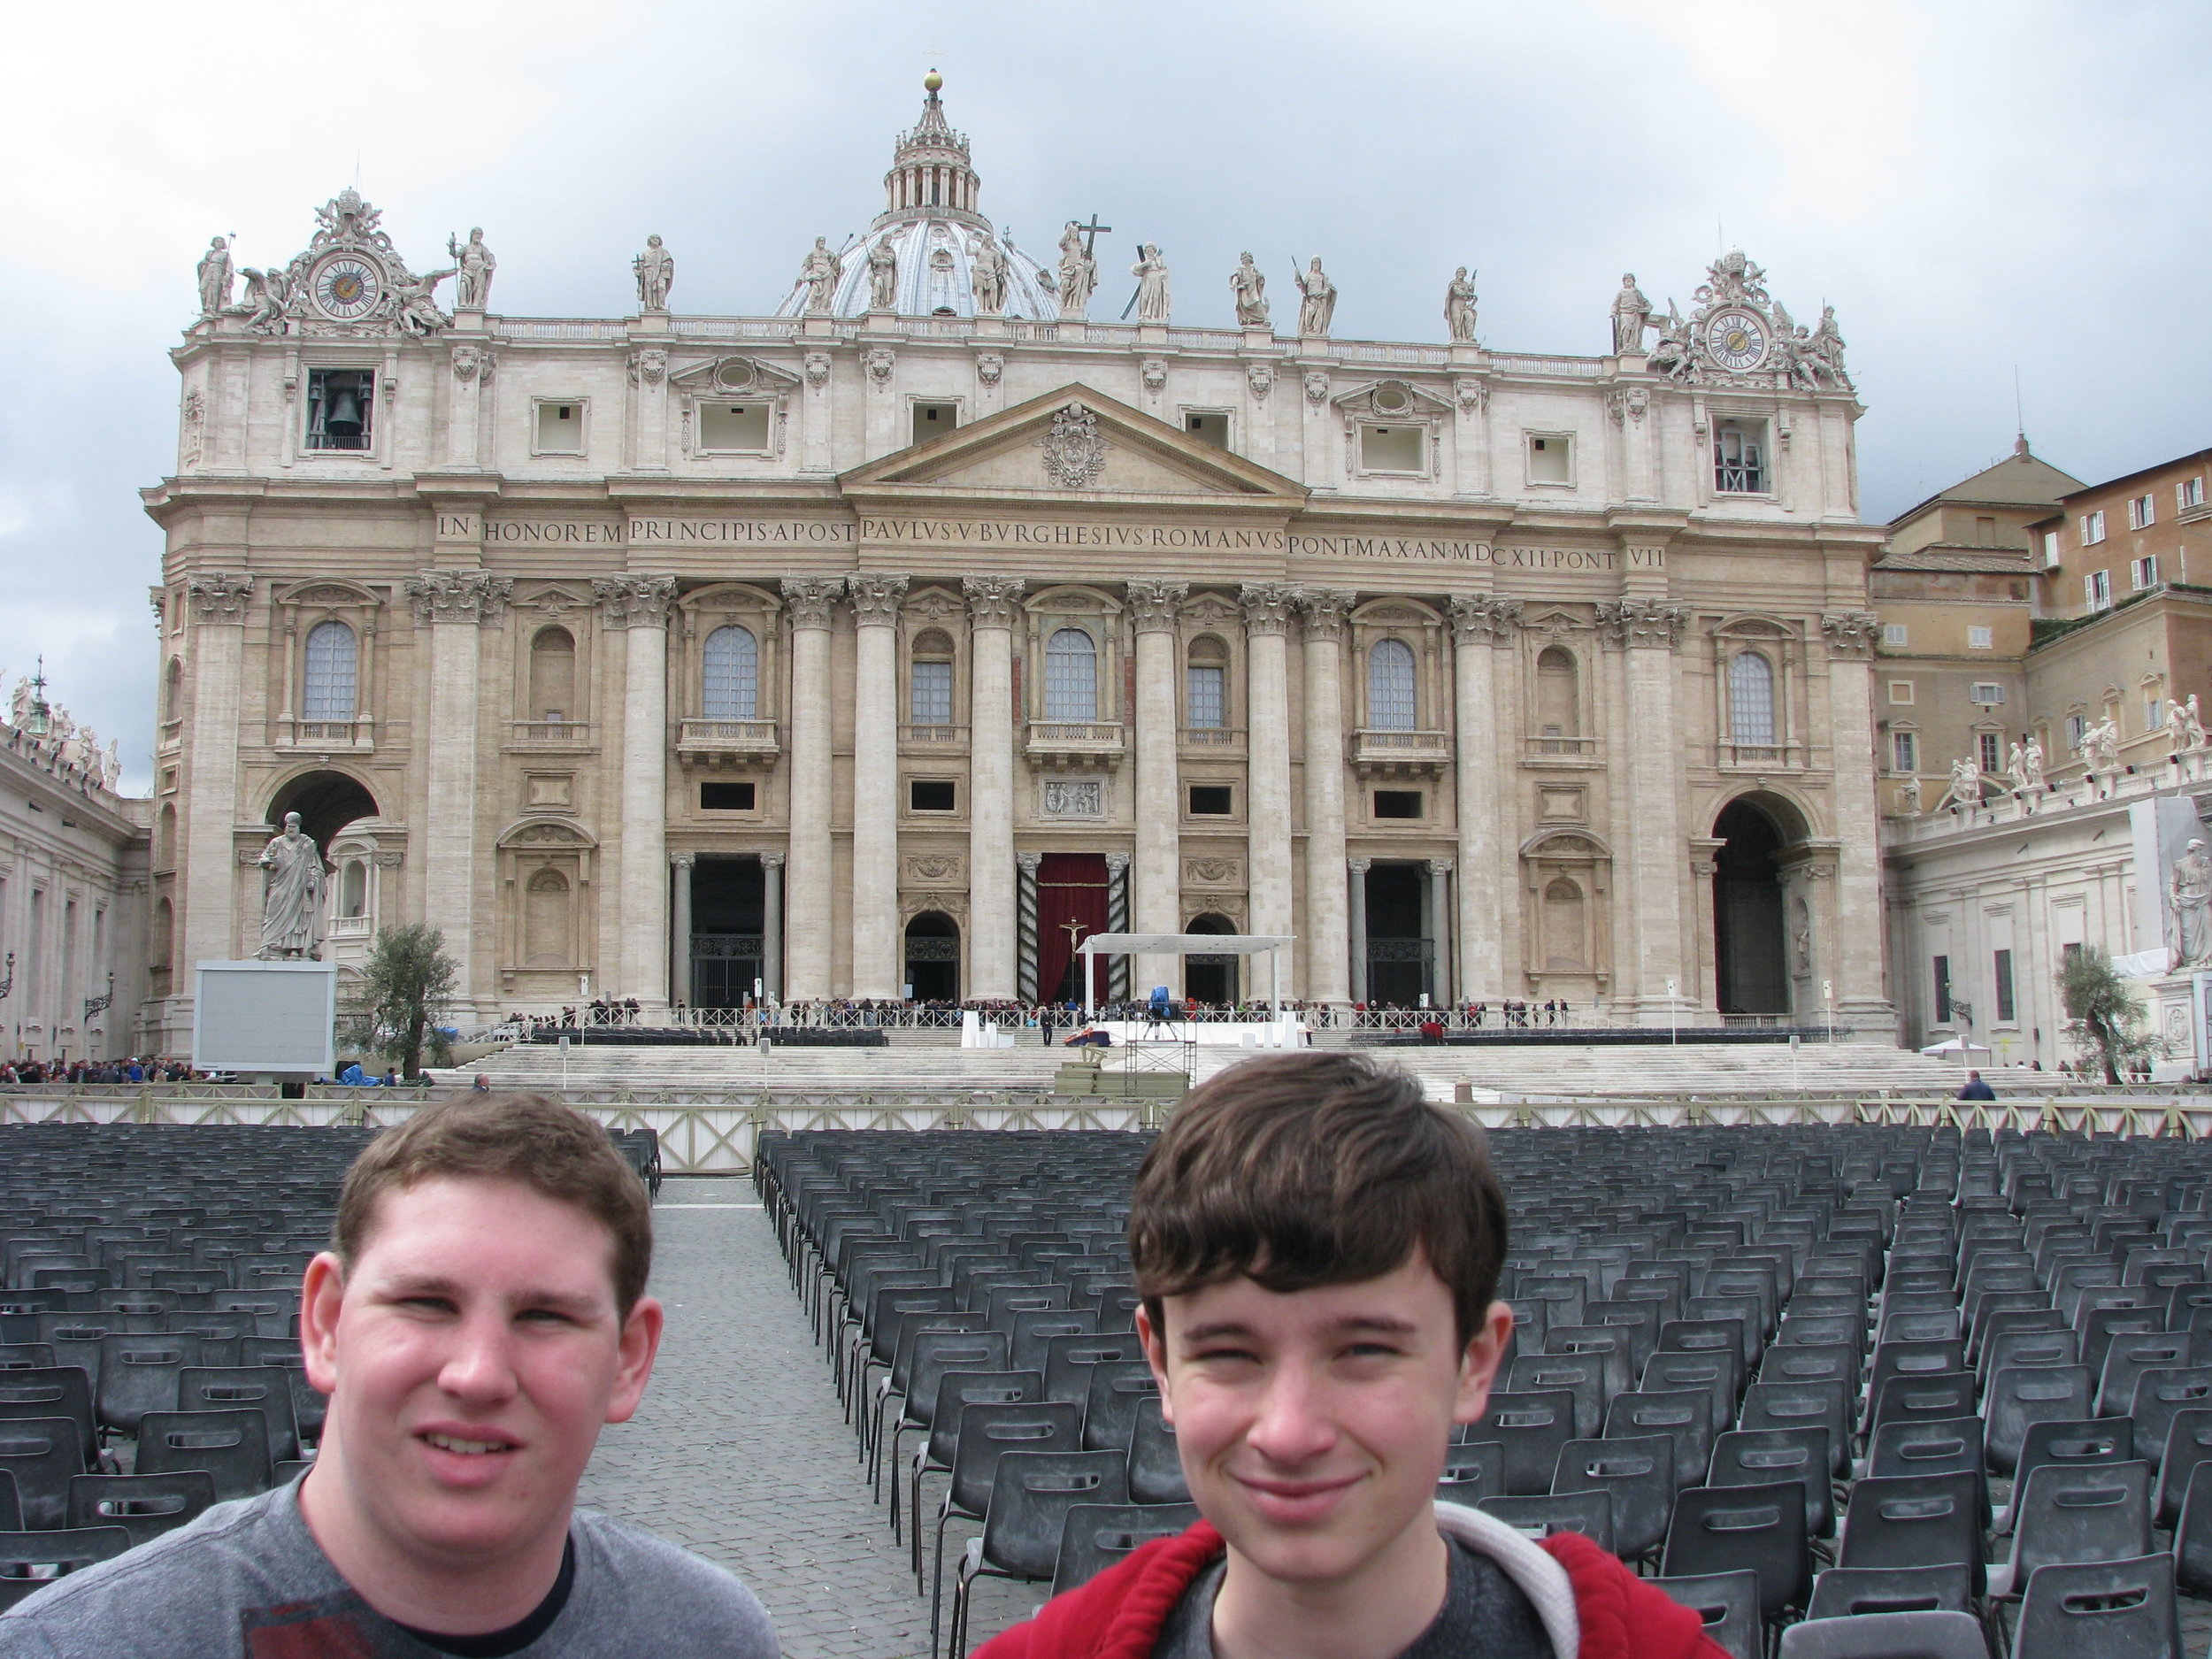 Boys in front of St Peter's